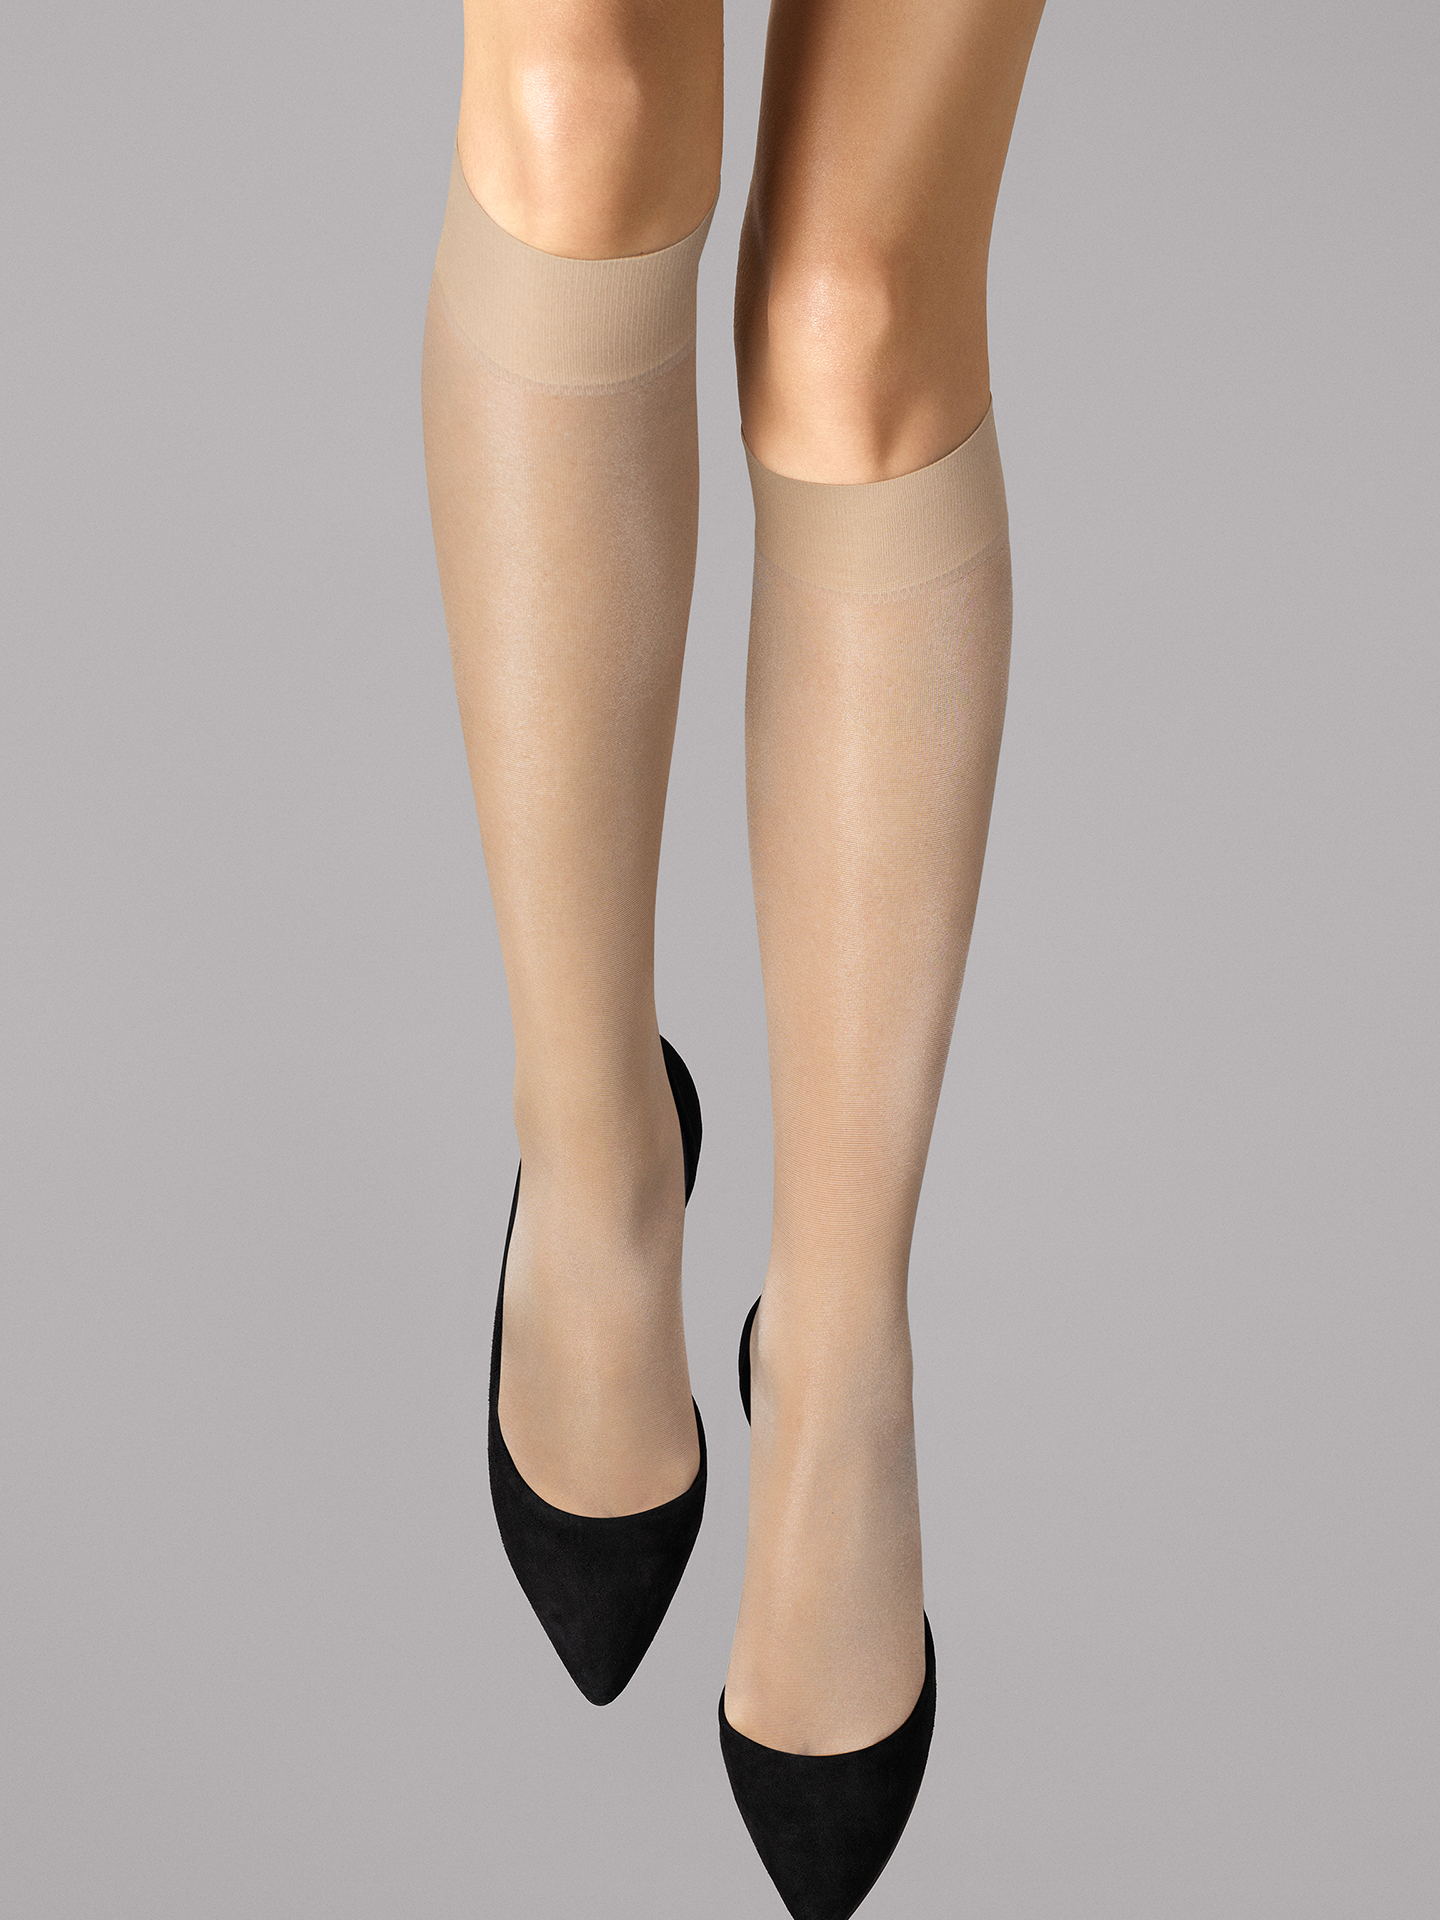 Wolford Apparel & Accessories > Clothing > Gambaletti Satin Touch 20 Knee-Highs - 2401 - S